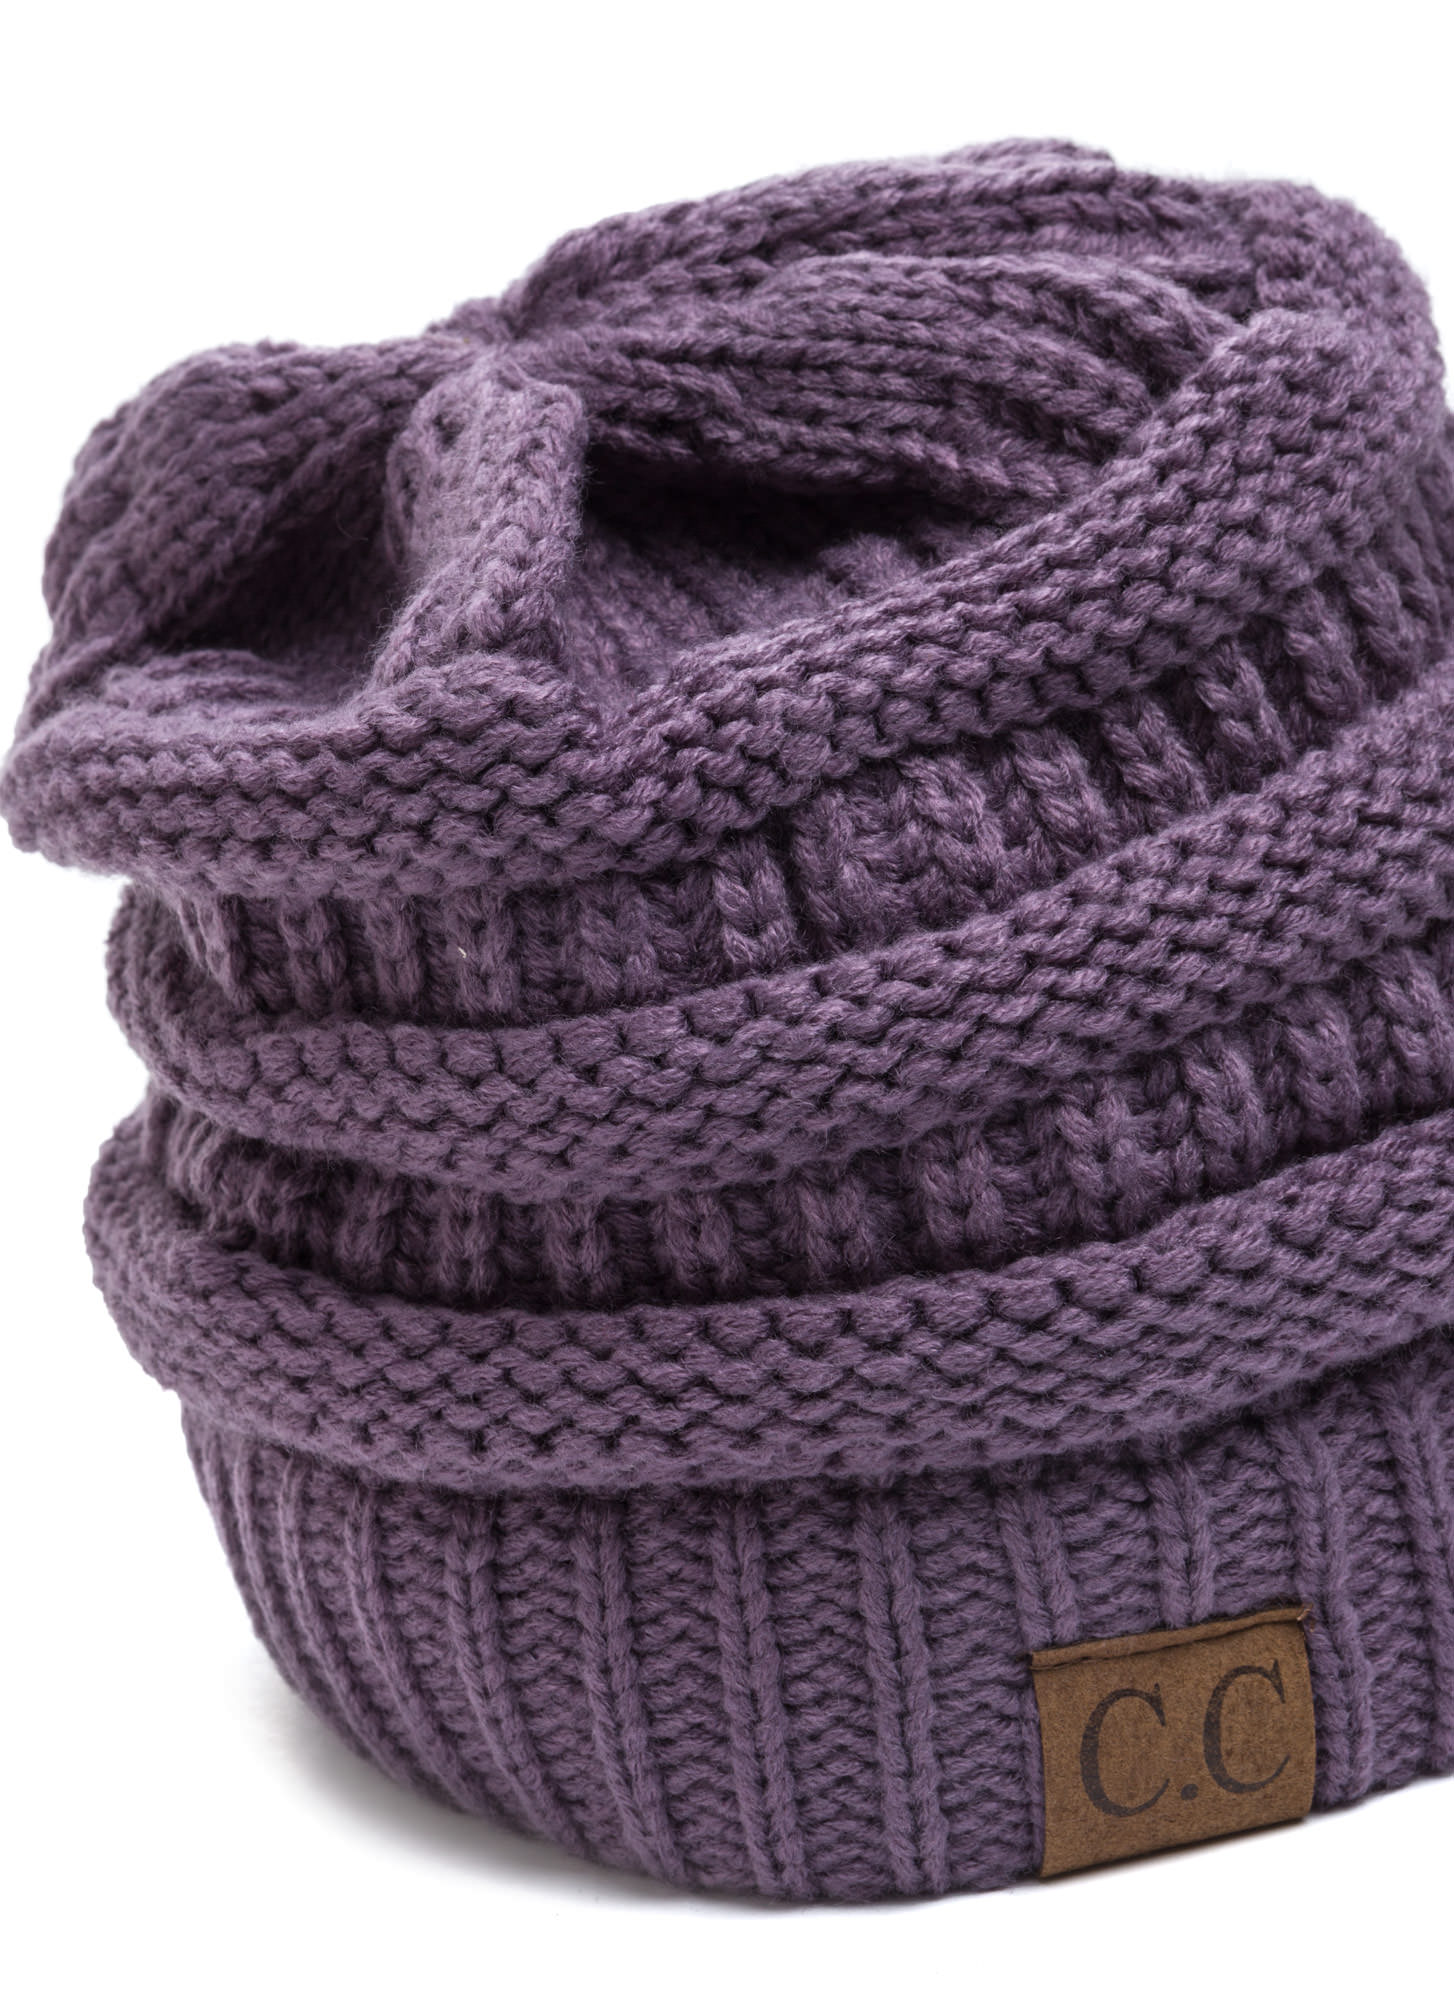 CC Cable Kit Beanie LAVENDER